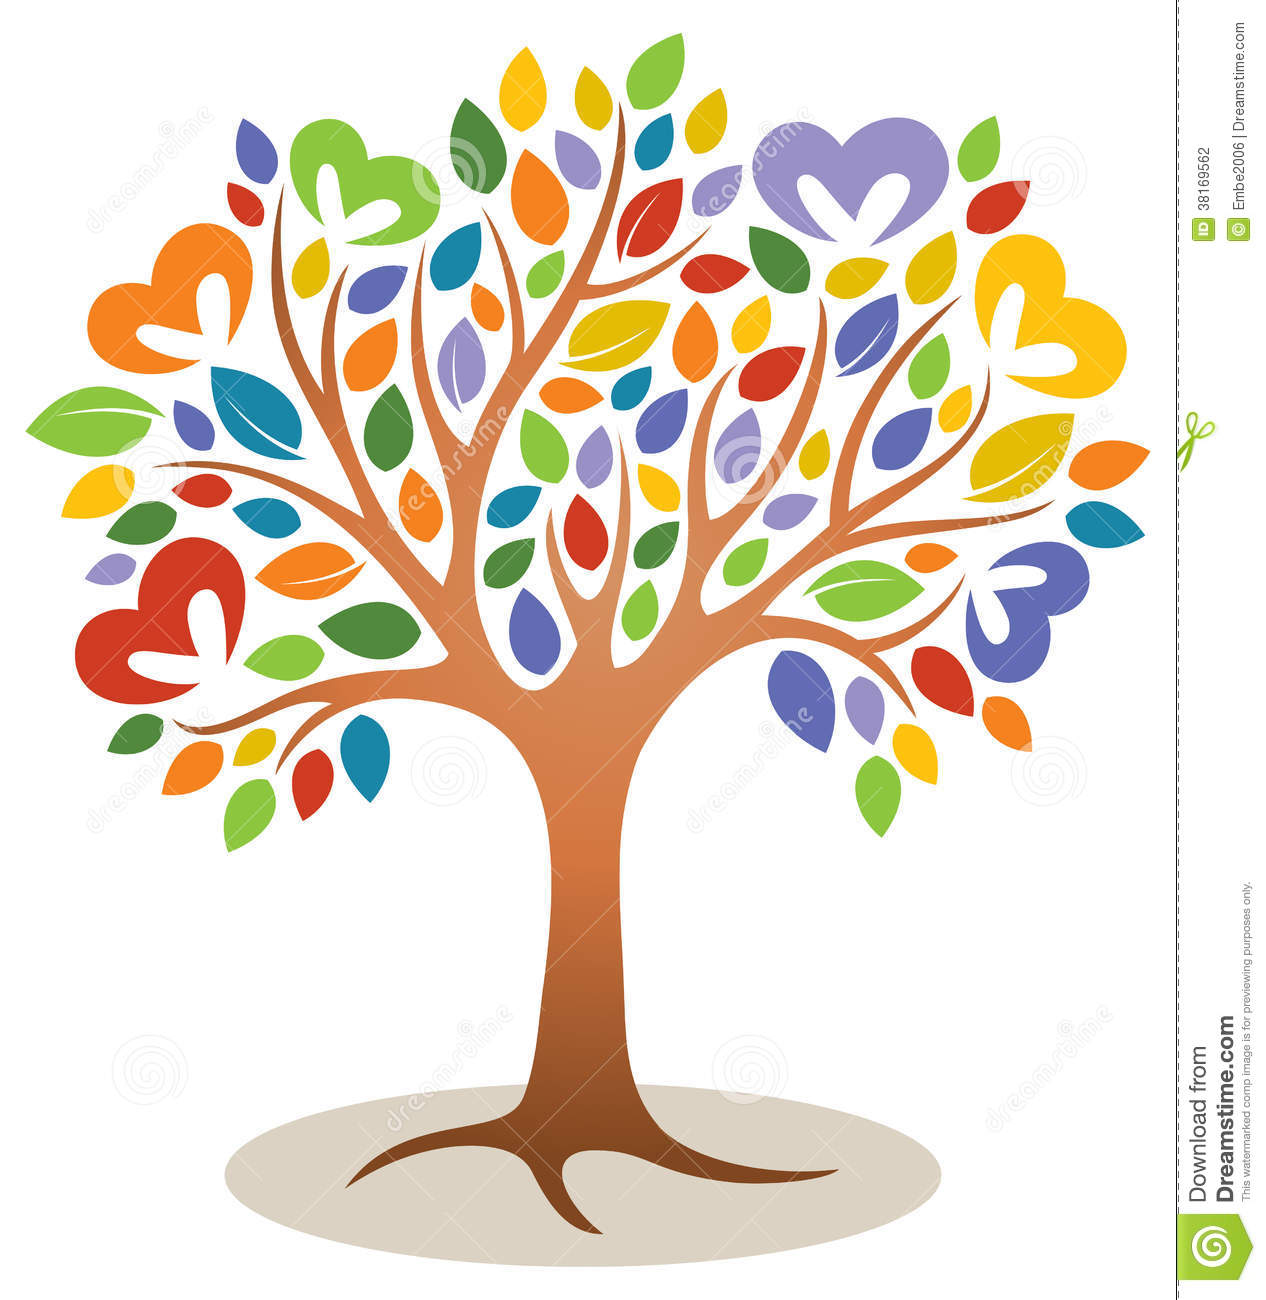 Tree clipart with hearts jpg royalty free library Free heart tree clipart - ClipartNinja jpg royalty free library